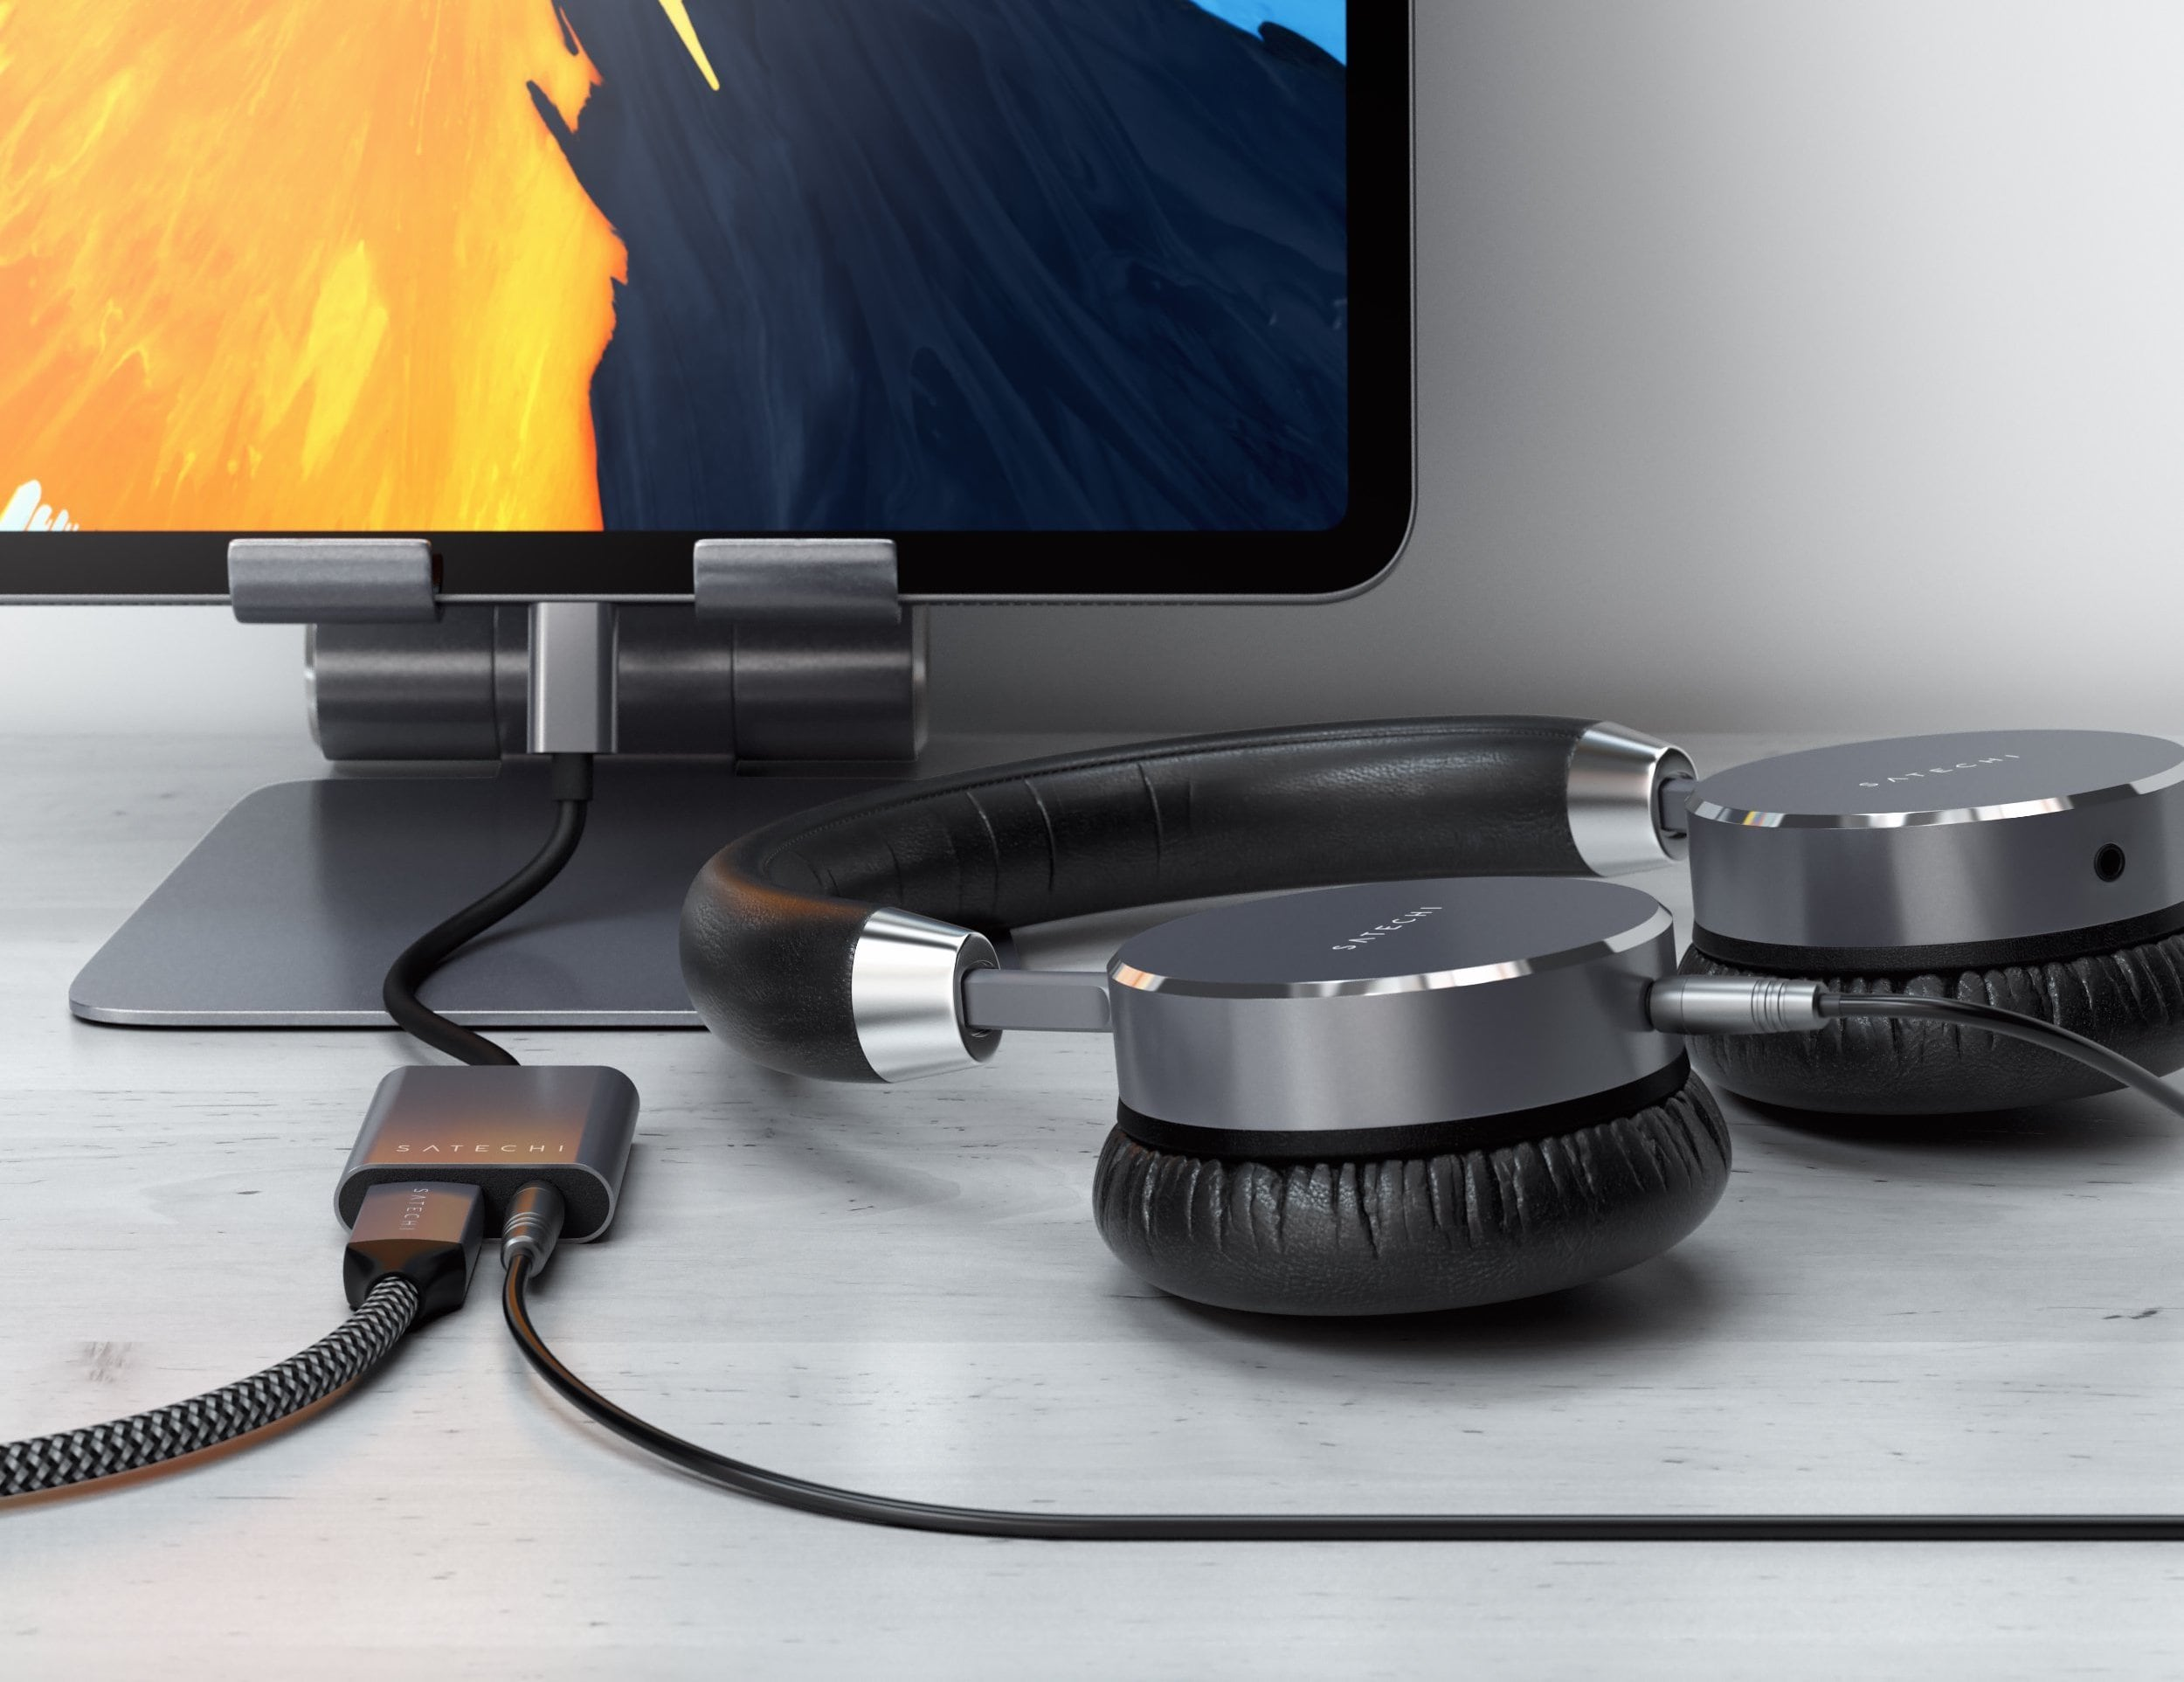 Satechi Type-C Headphone Jack Aluminum Adapter lets you charge and listen